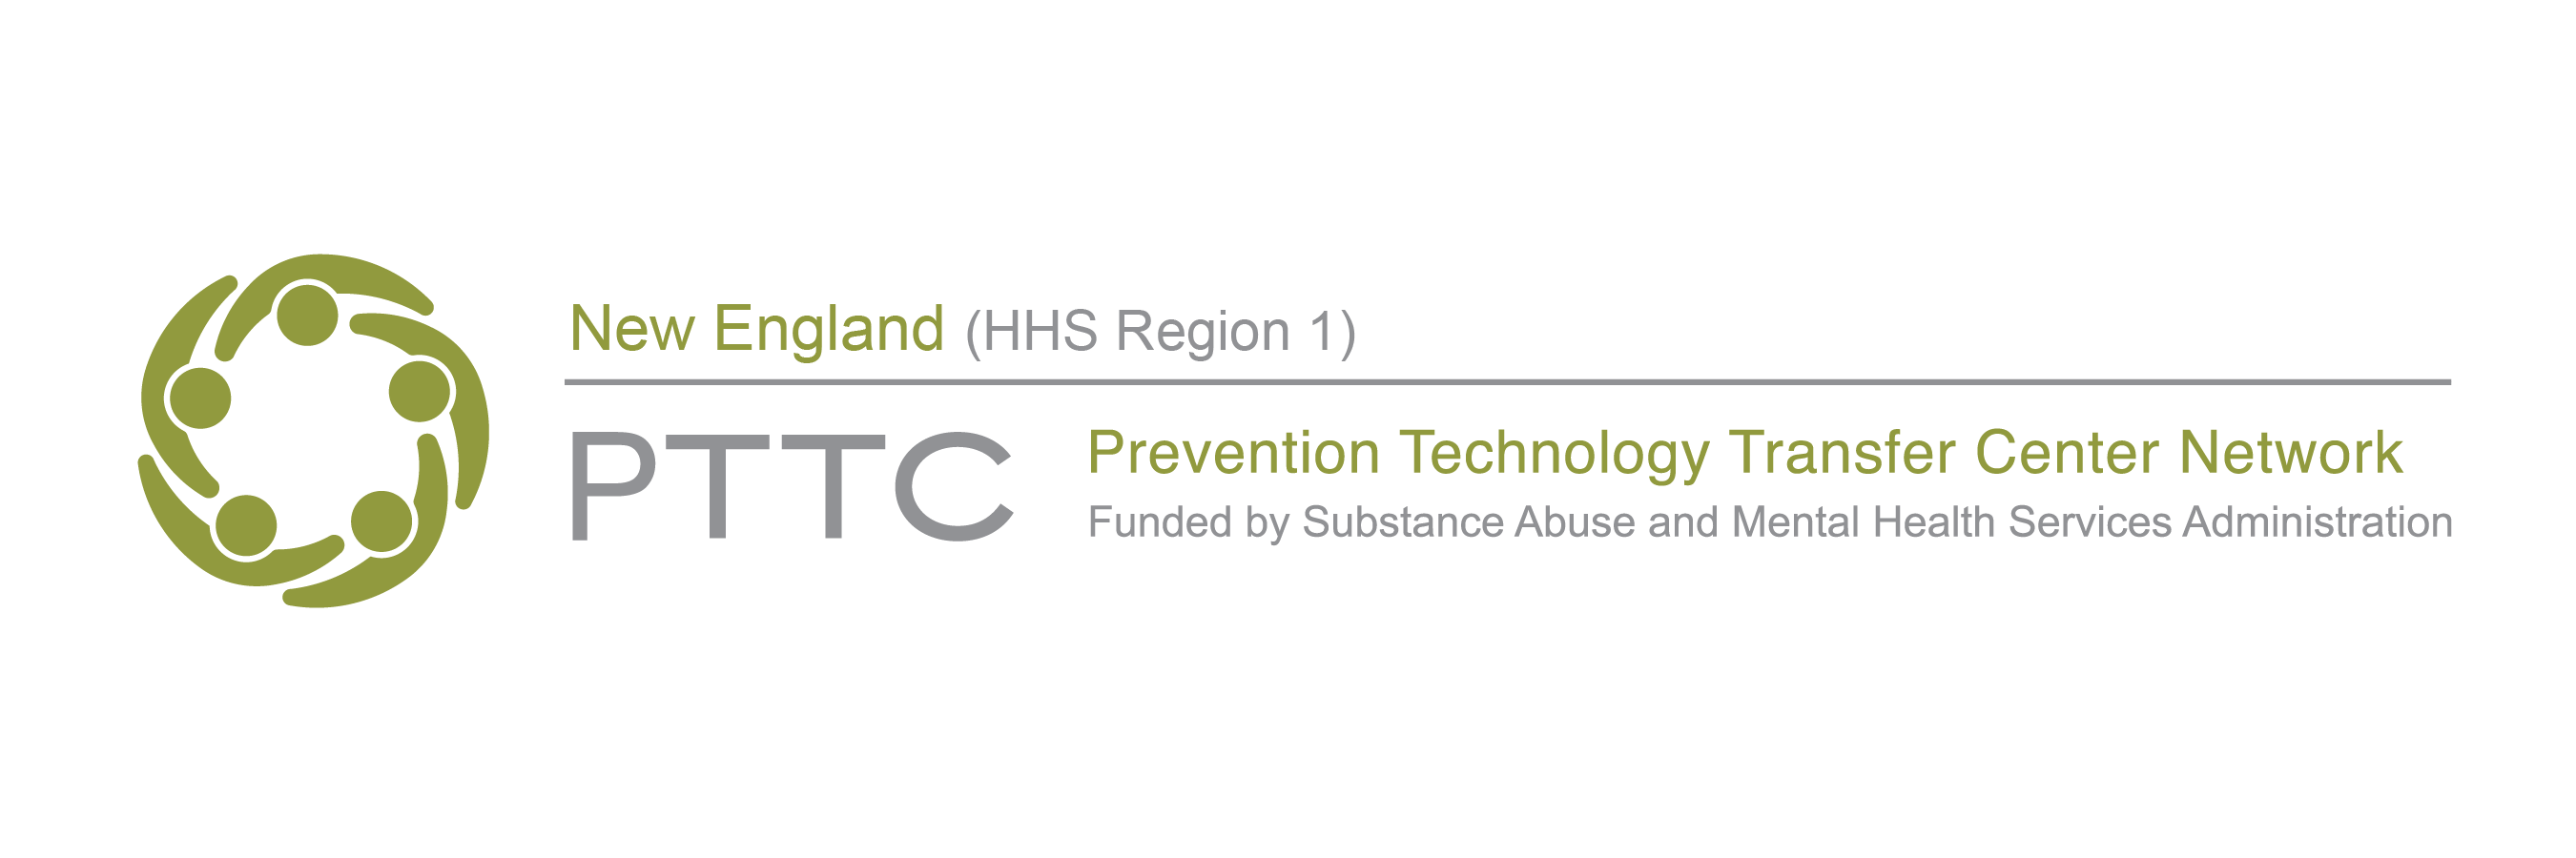 New England PTTC Marijuana Prevention Education Toolkit Launch & Listening Session (ME#041/460)